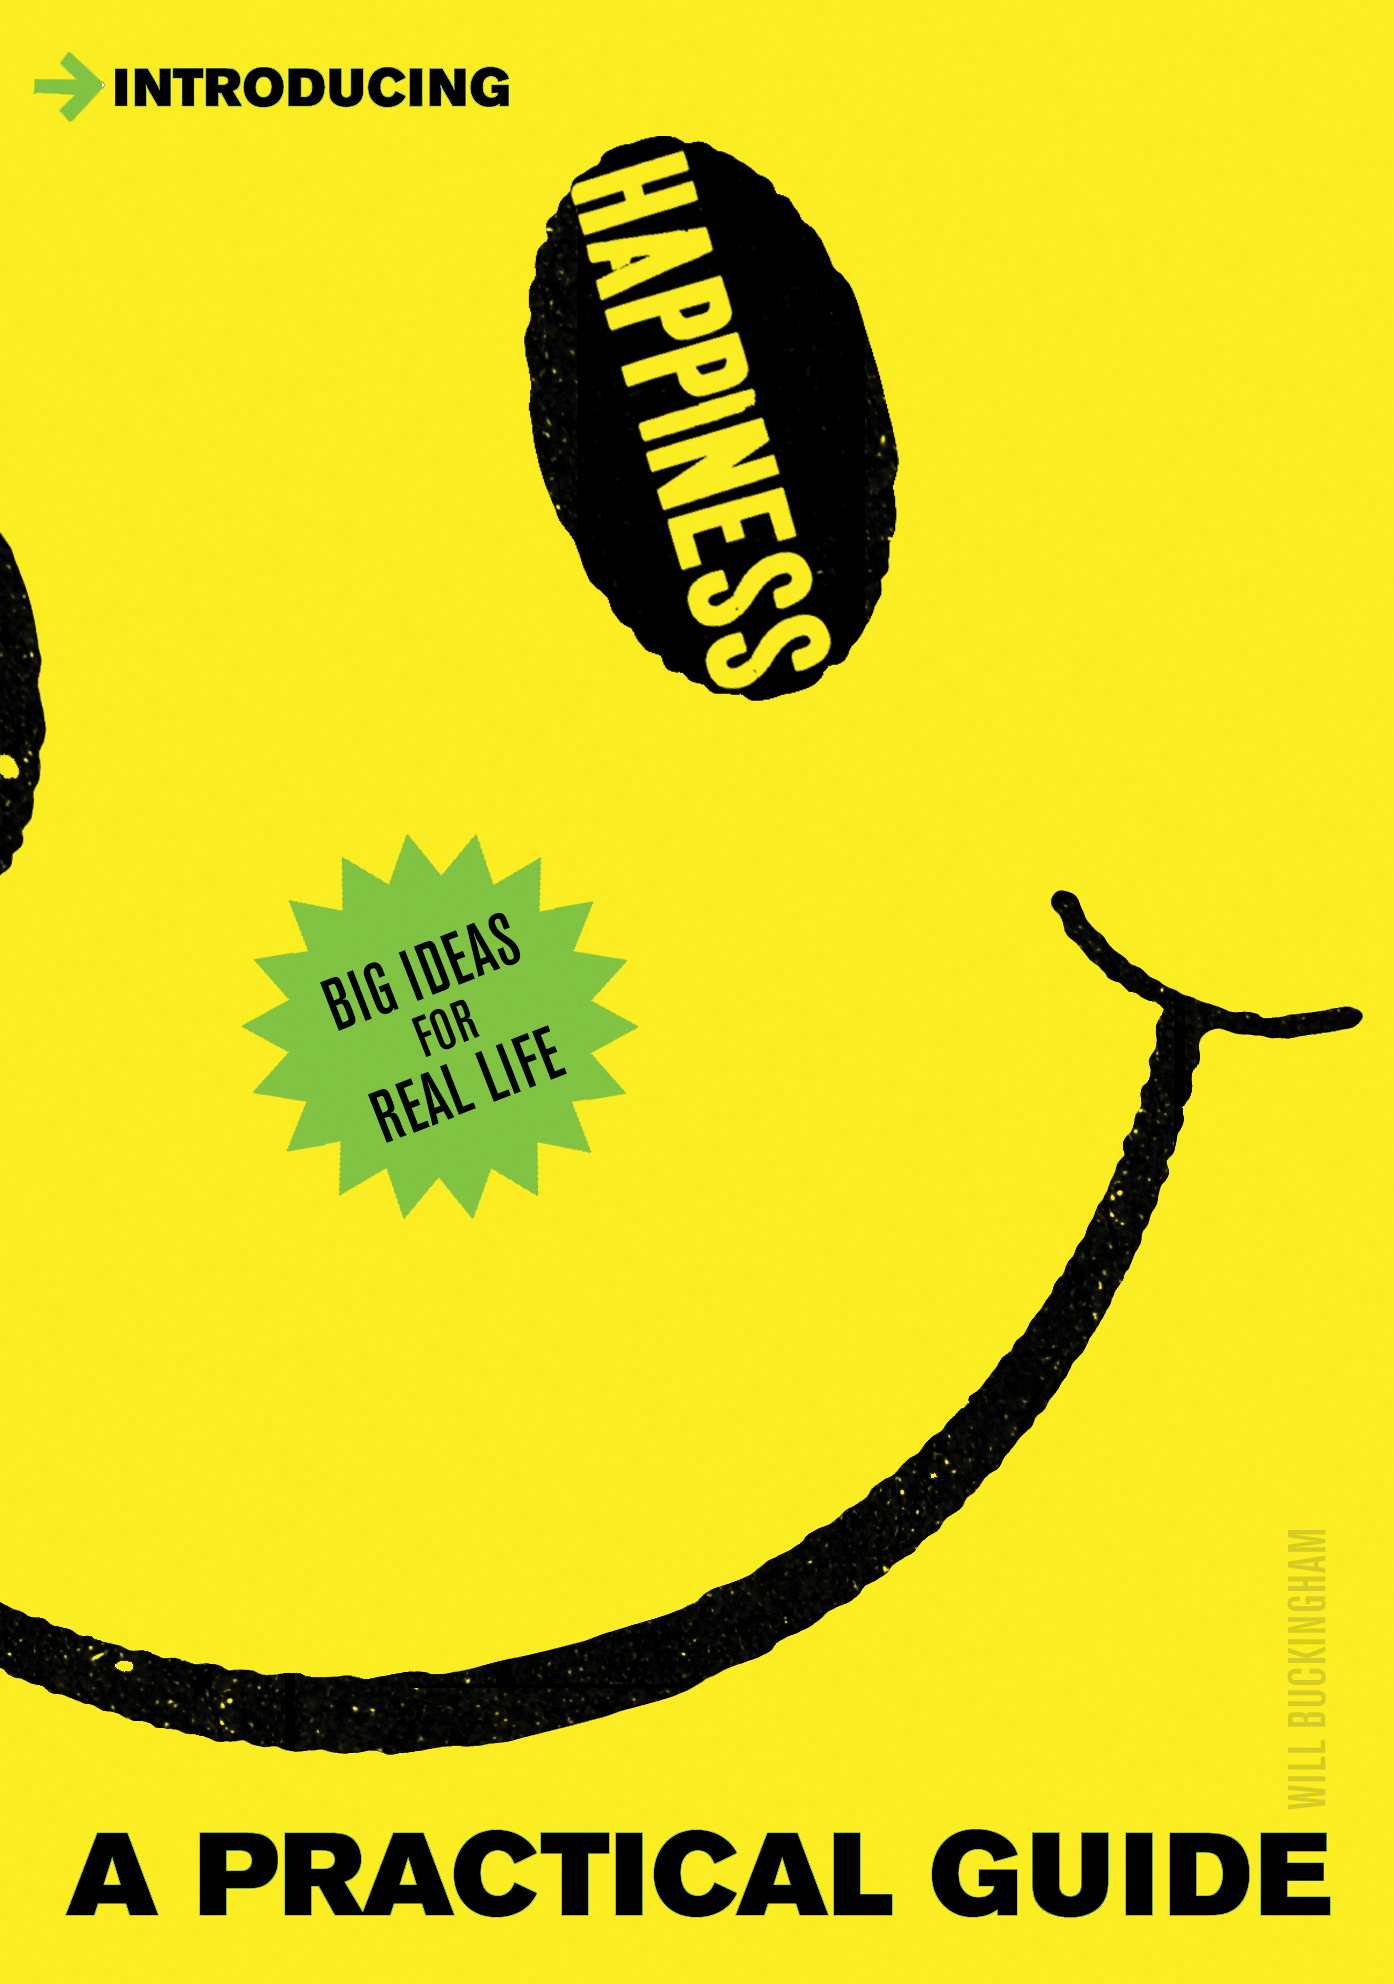 Introducing Happiness: A Practical Guide